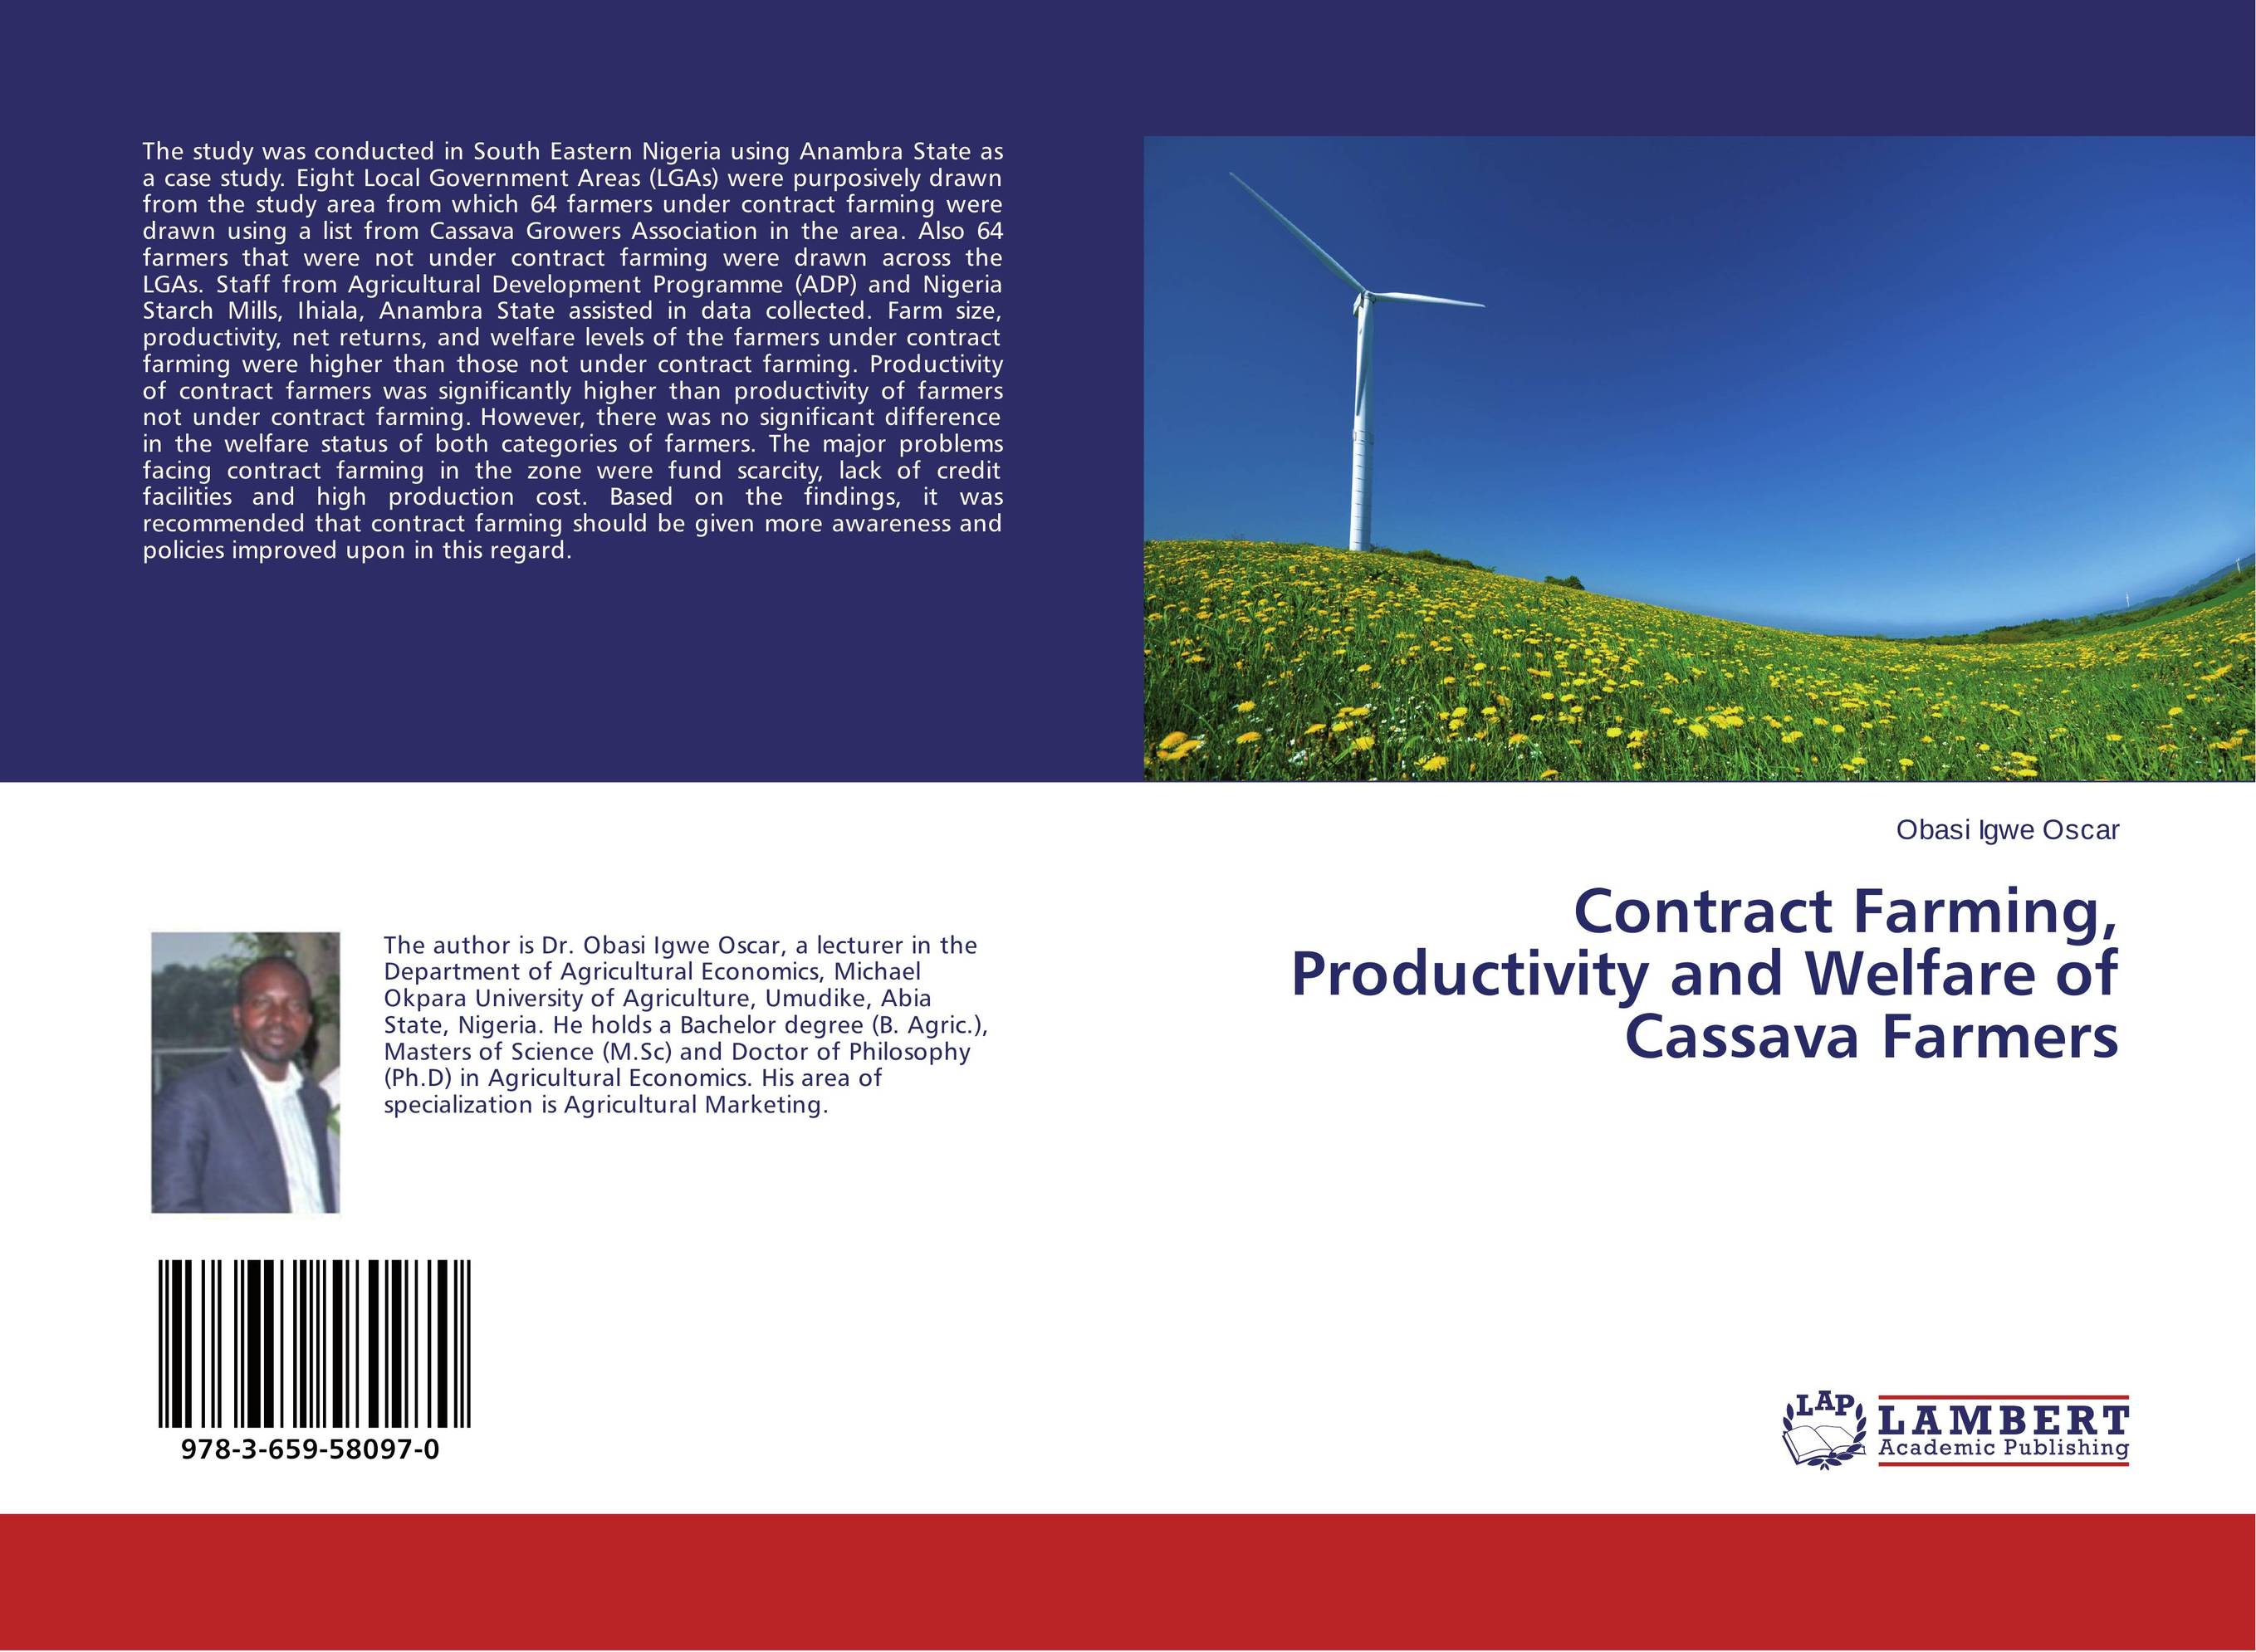 Contract Farming, Productivity and Welfare of Cassava Farmers